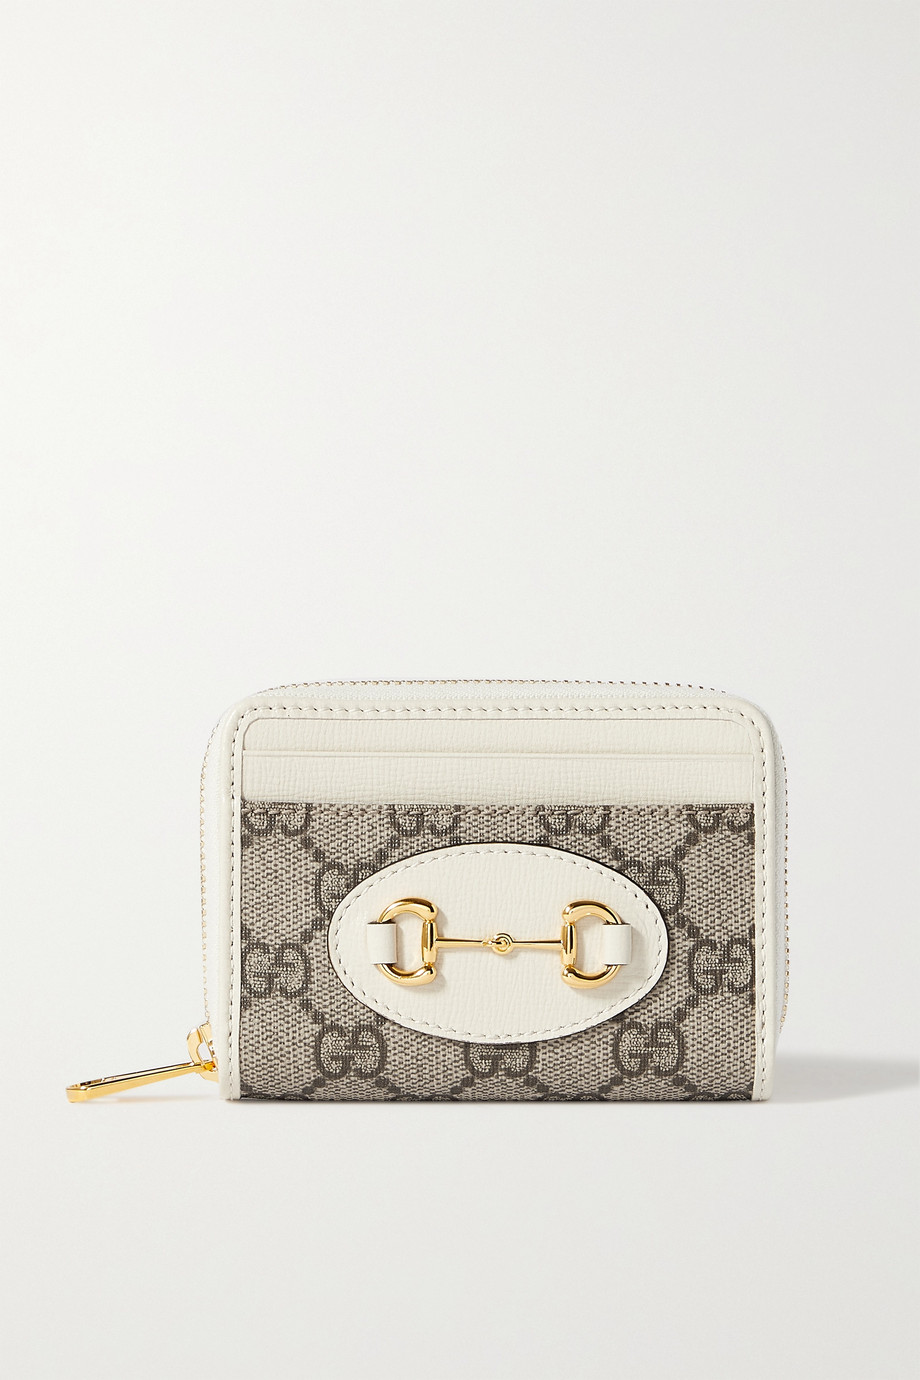 Gucci 1955 Horsebit small leather-trimmed printed coated-canvas cardholder